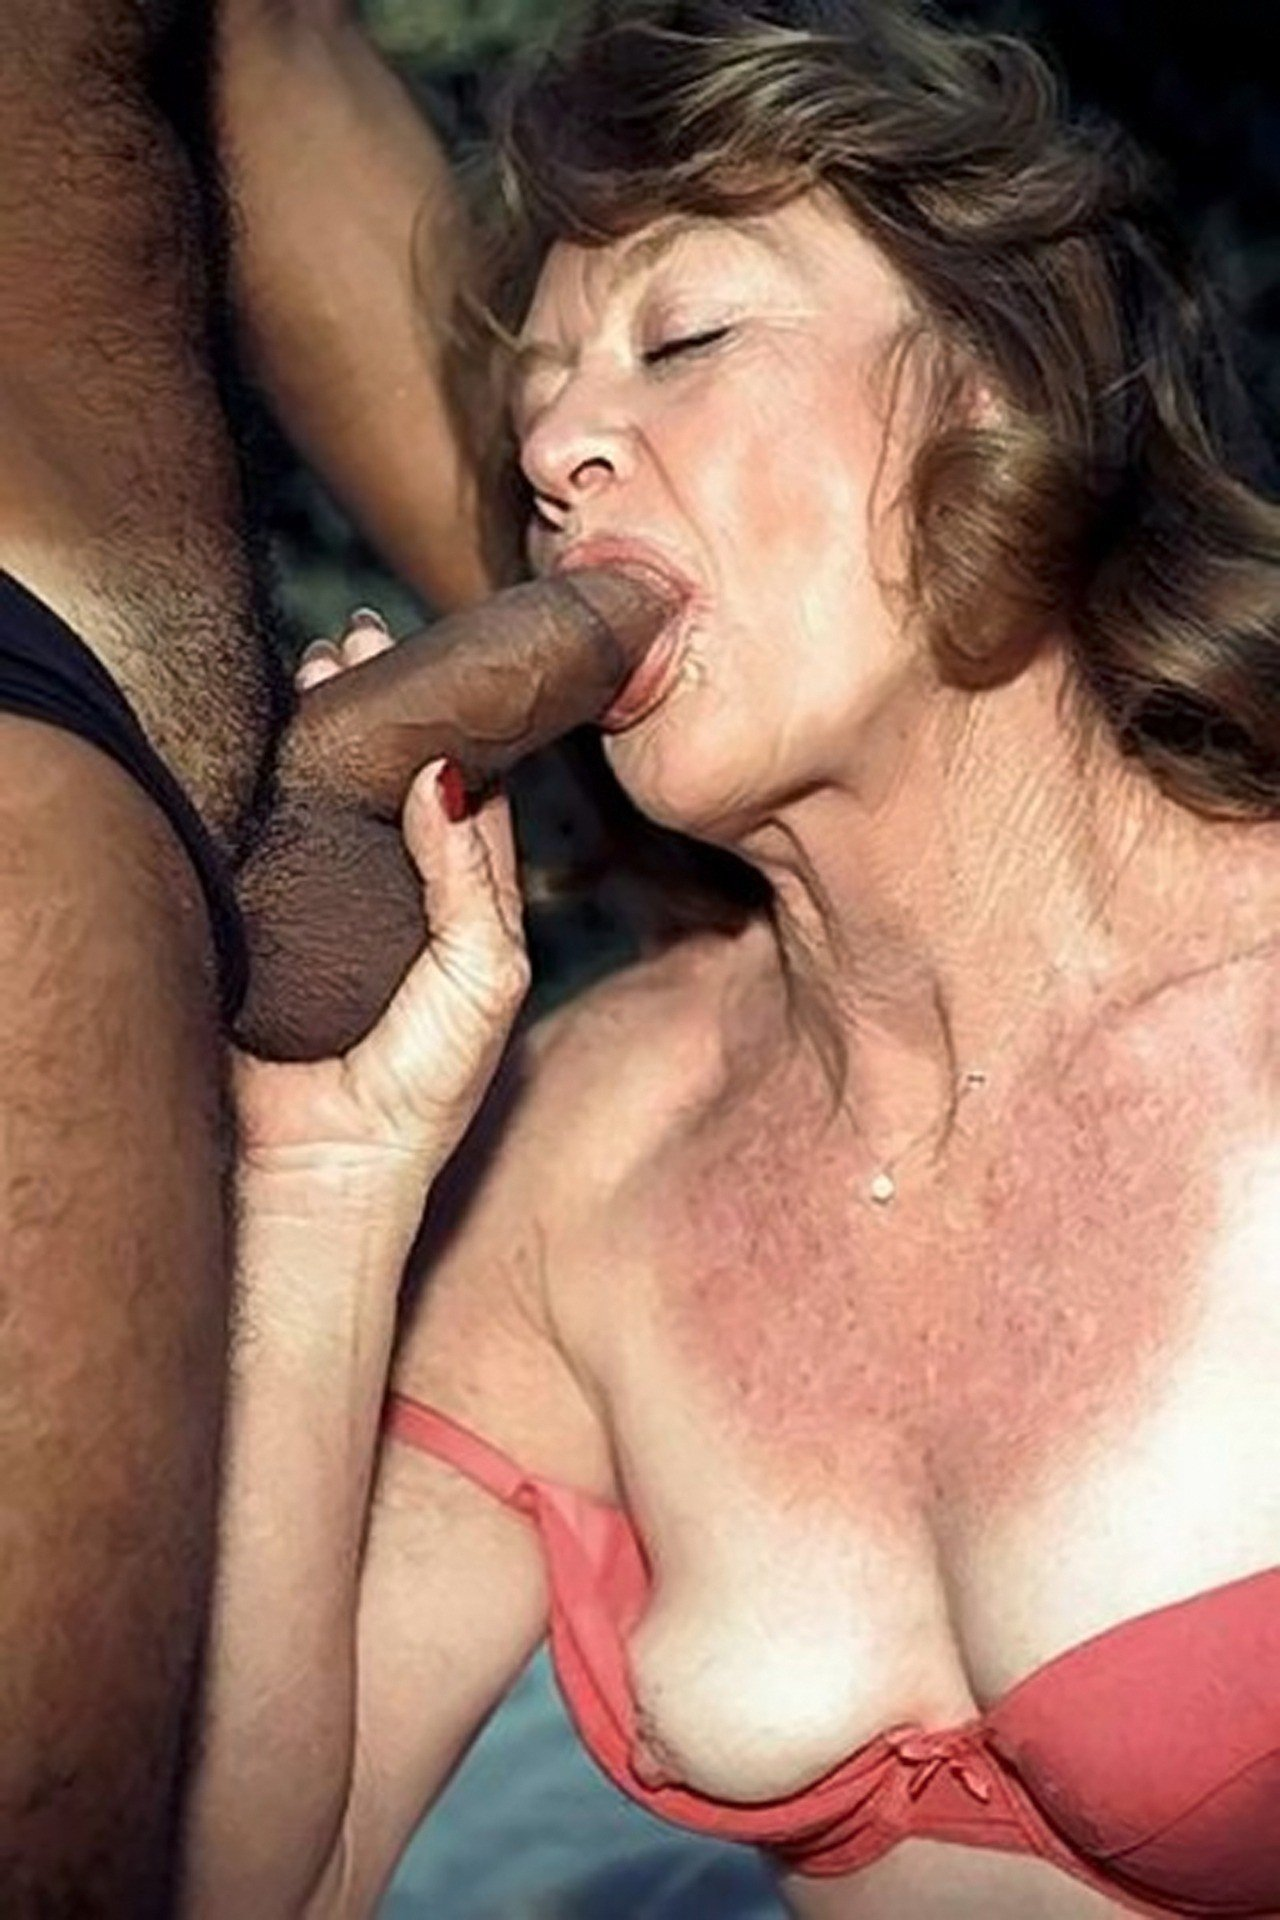 See and save as older lady with big cans enjoys sucking cock porn pict